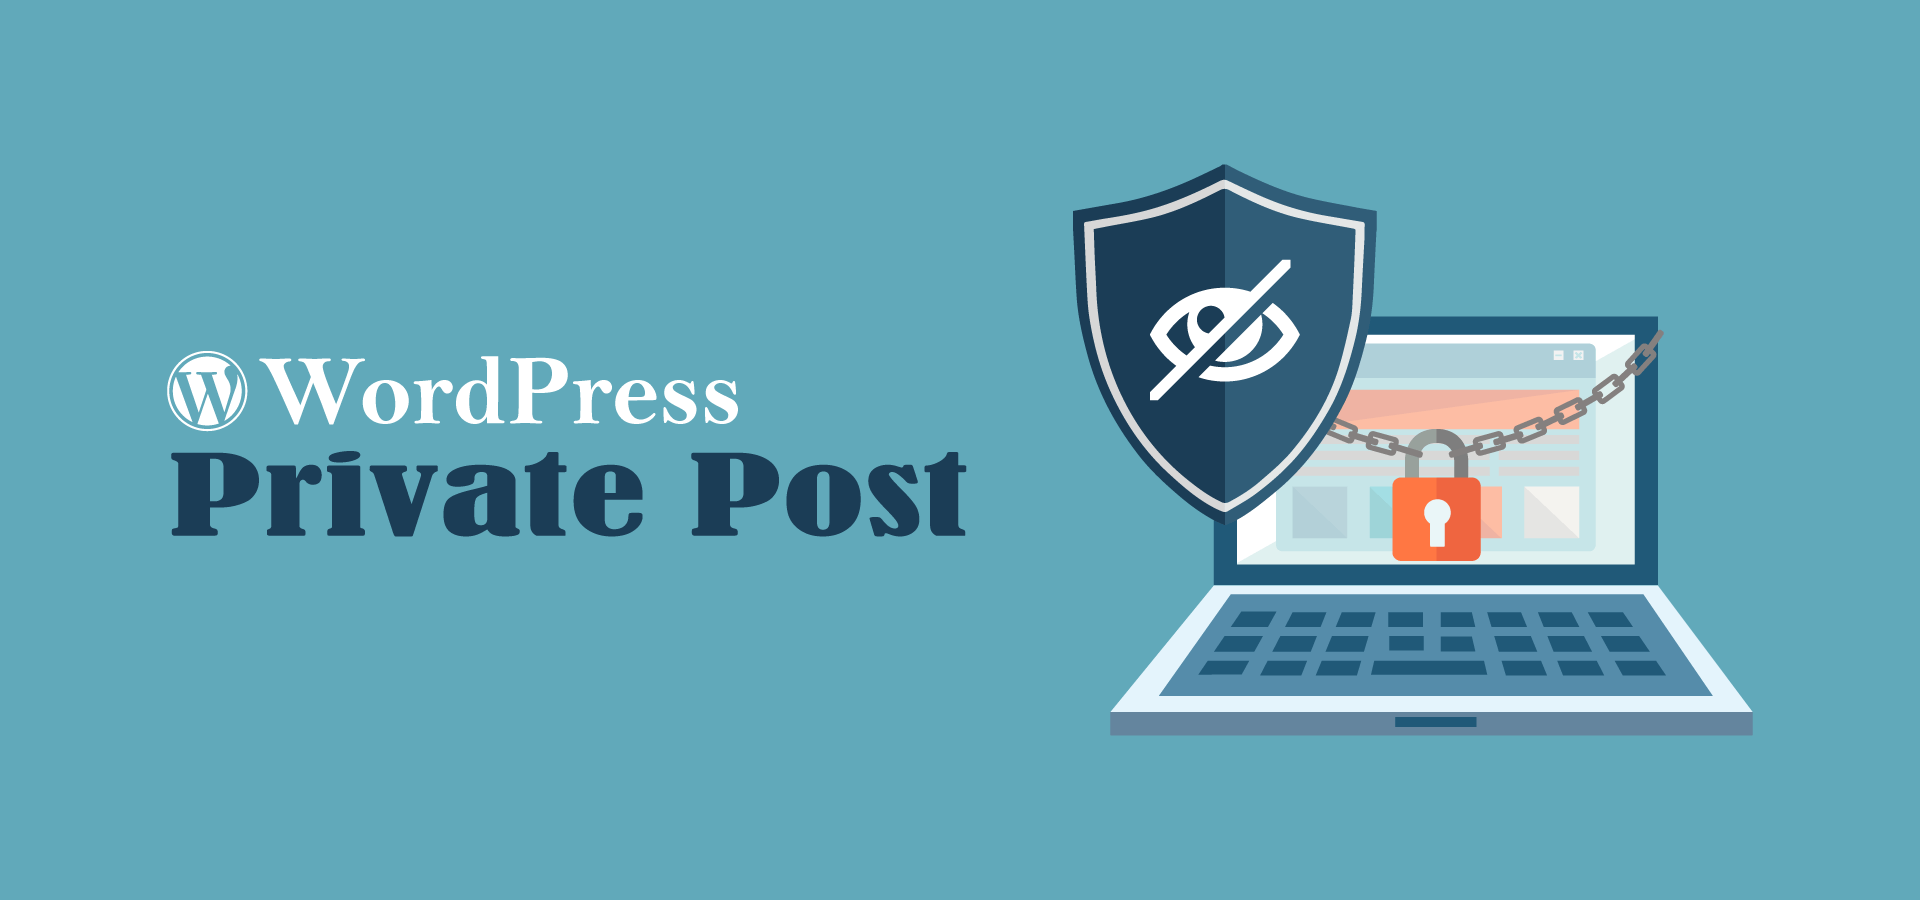 WordPress Tips: How to Create a Private Post in WordPress